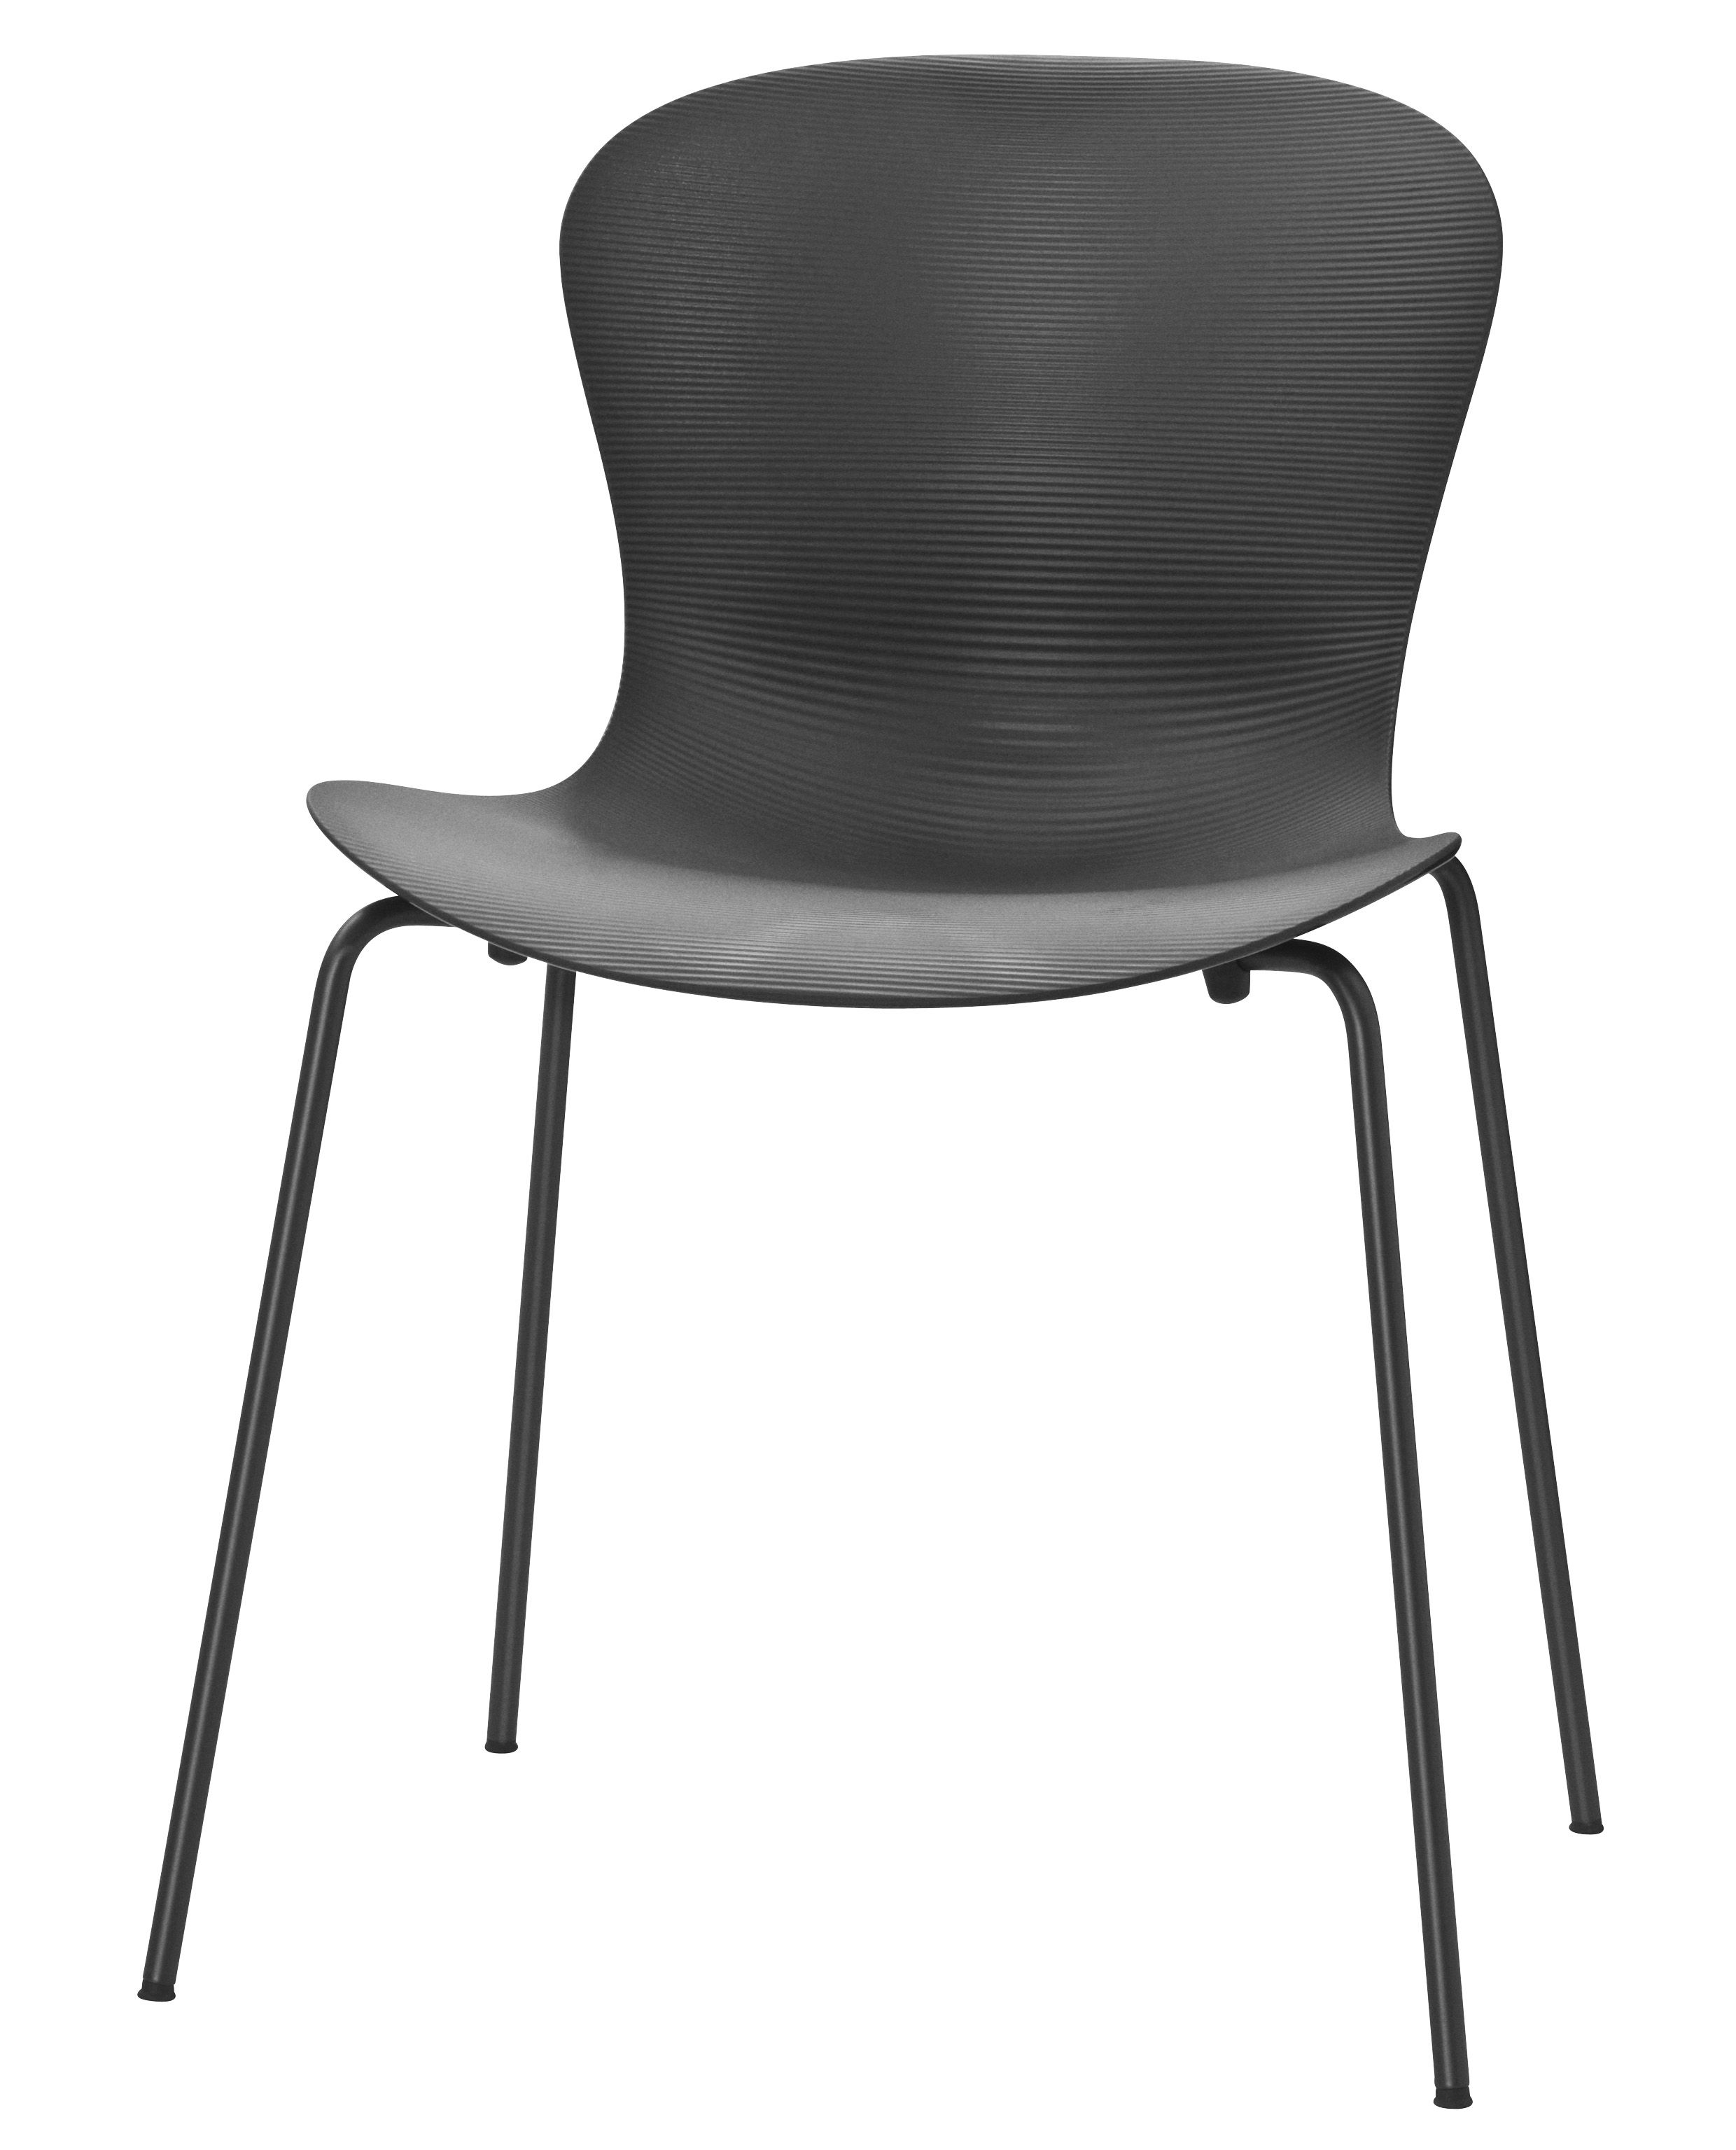 Furniture - Chairs - Nap Stacking chair - Plastic seat by Fritz Hansen - Grey - Lacquered steel, Polyamide